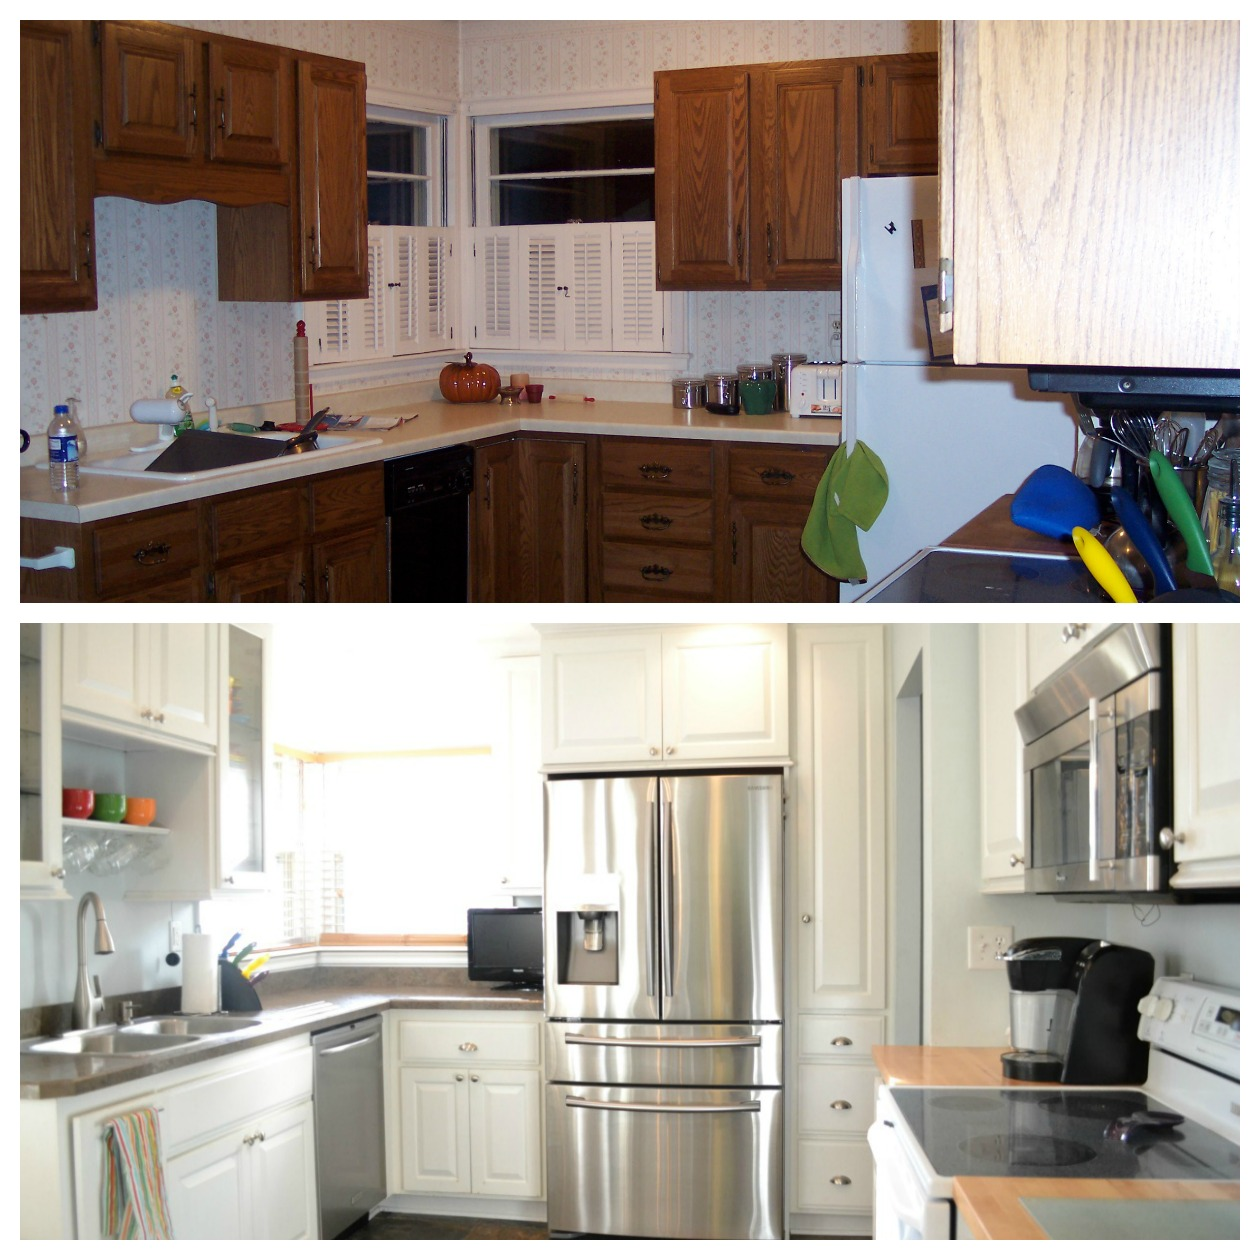 Kitchen Before And After : Image Kitchen Before And After Download